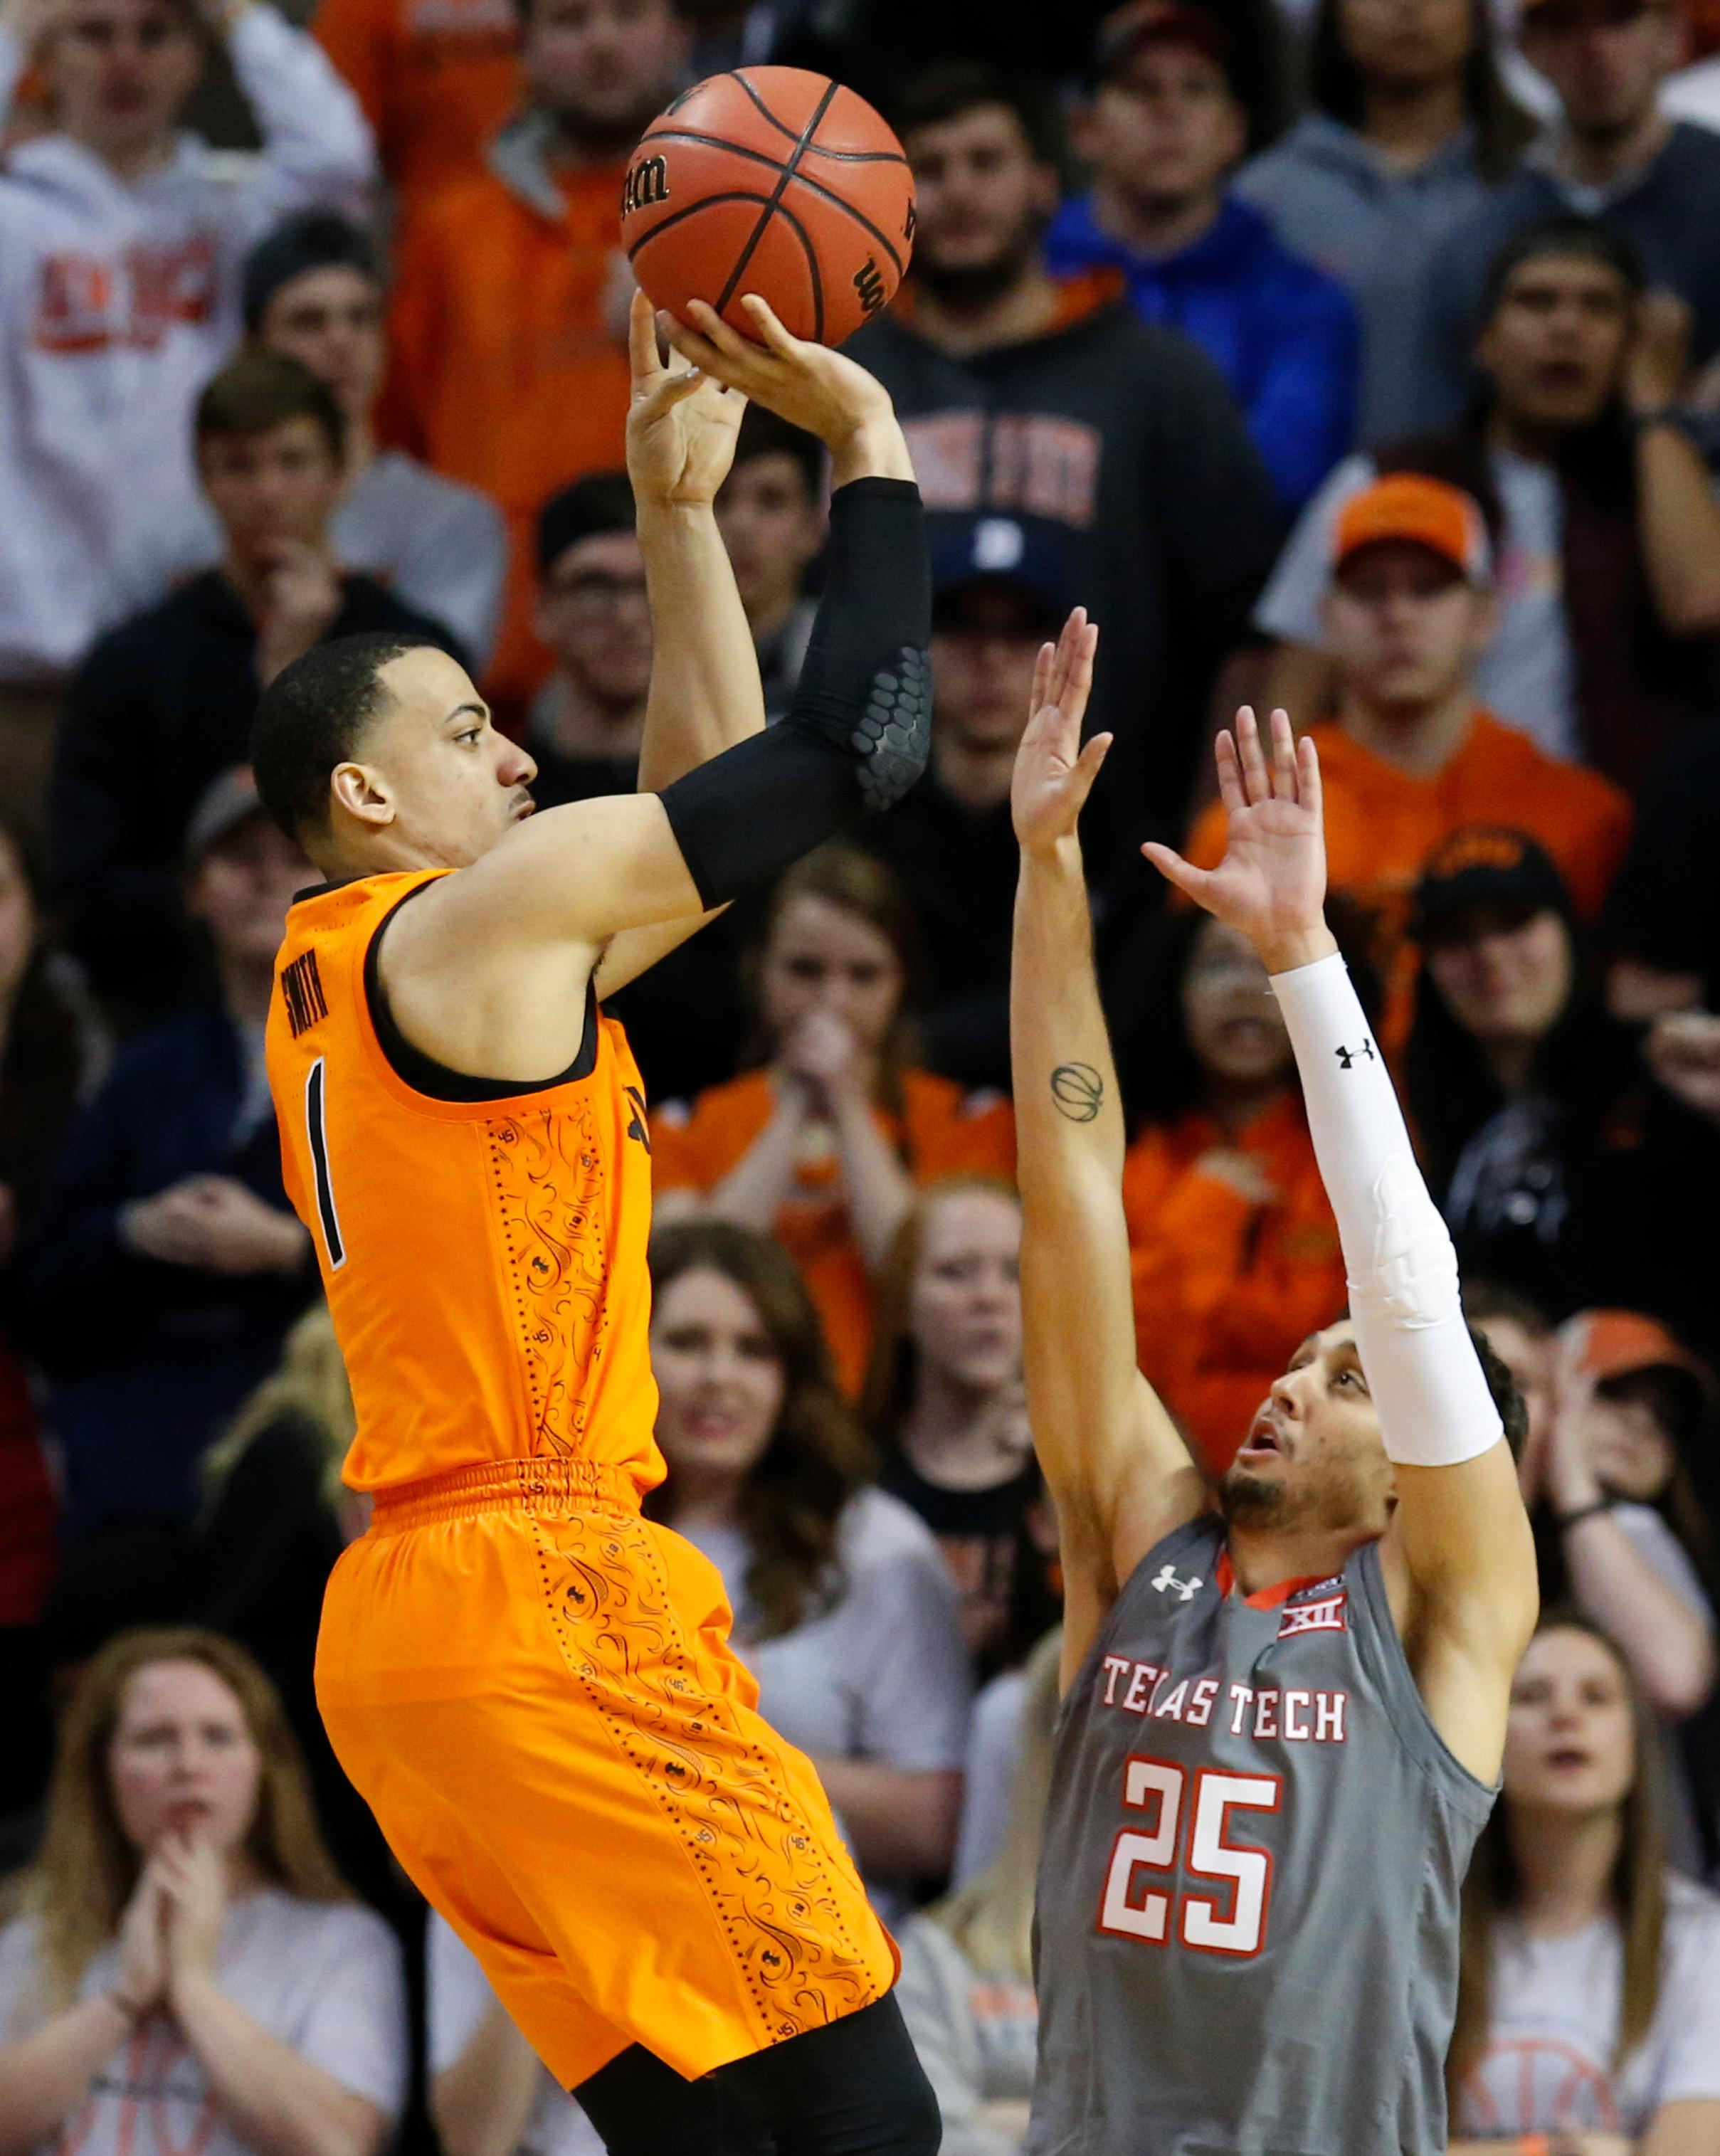 Oklahoma State guard Kendall Smith, left, shoots over Texas Tech guard Davide Moretti (25) during the second half of an NCAA college basketball game in Stillwater, Okla., Wednesday, Feb. 21, 2018. (AP Photo/Sue Ogrocki)